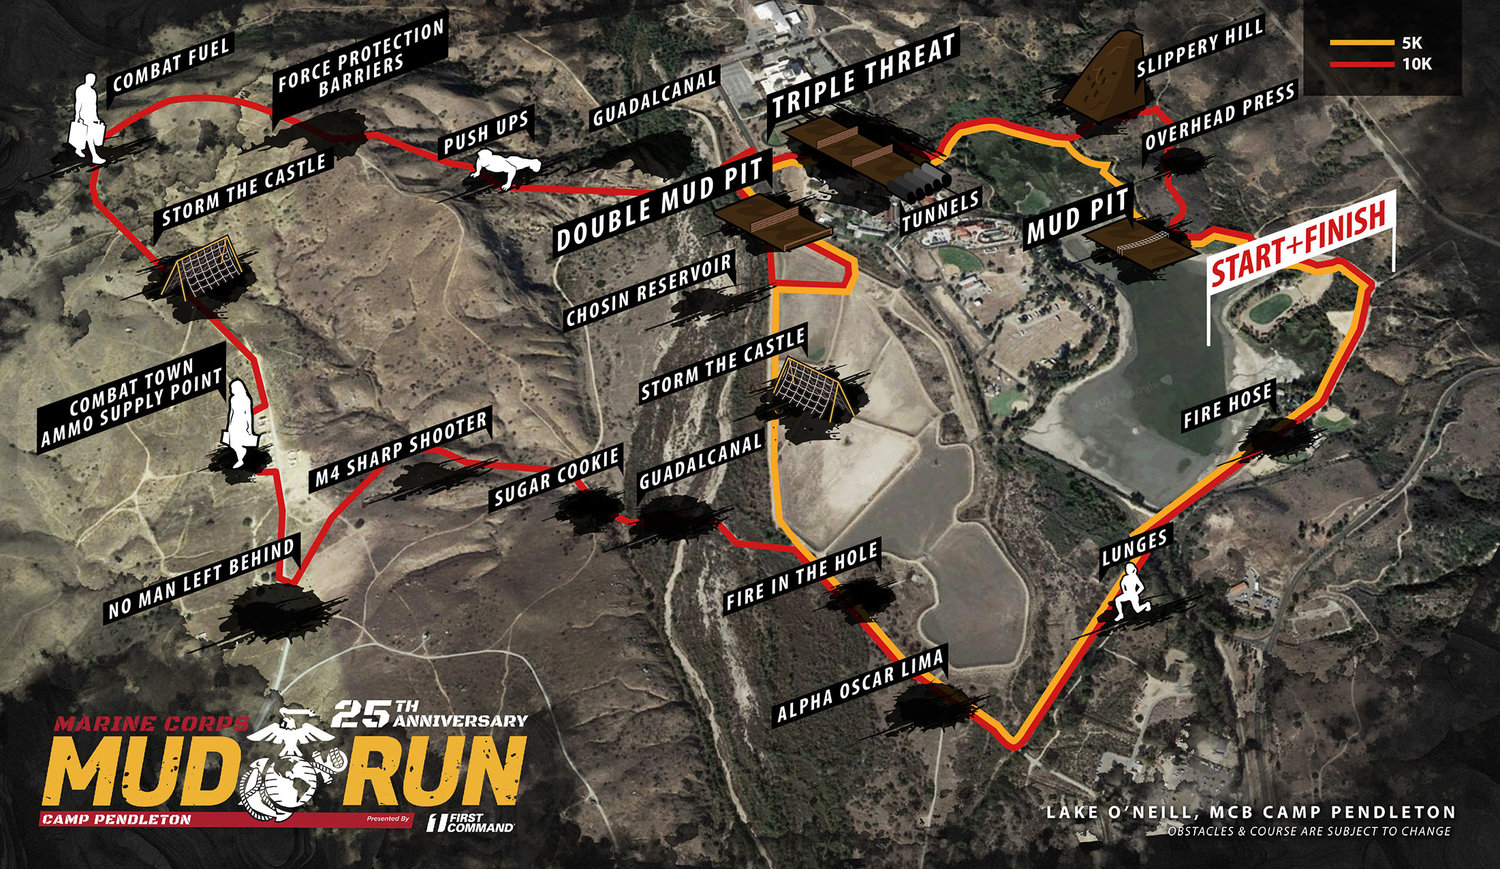 Marine Corps Mud Run Obstacle Map